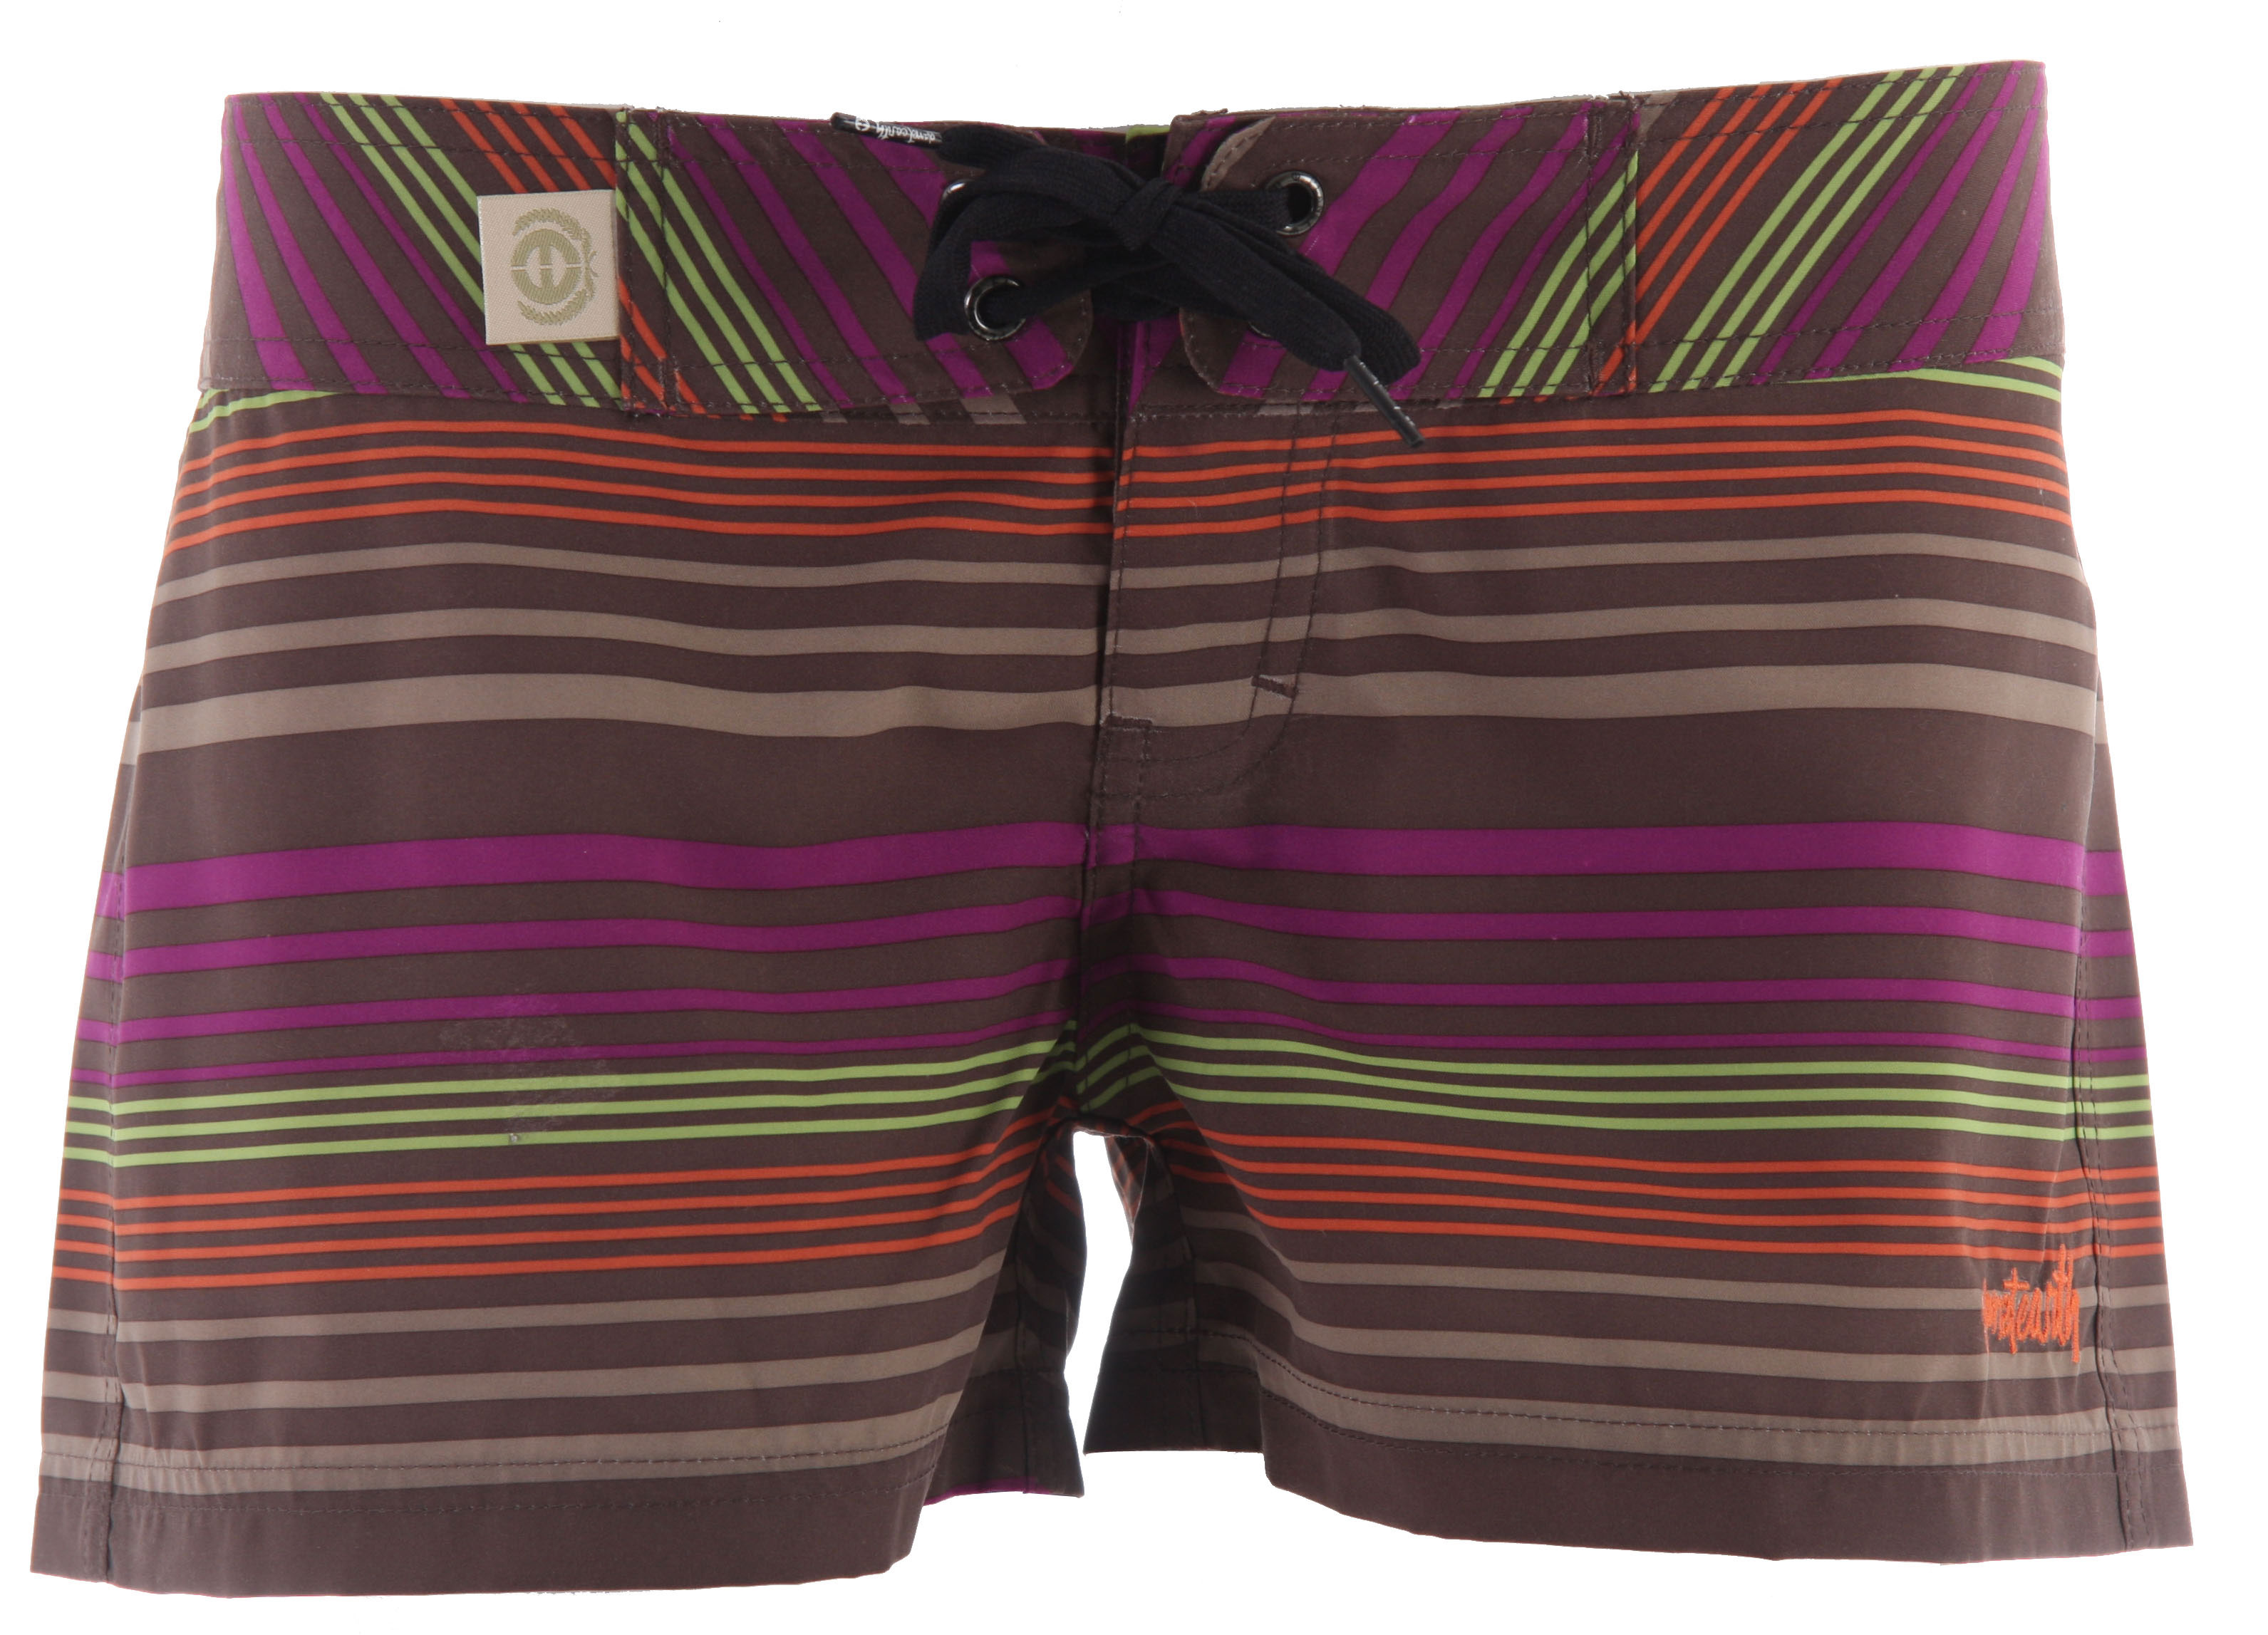 Surf Key Features of Planet Earth Kimmel Boardshorts:100% Recycled Polyester PET, 2.5'' Inseam - $18.95